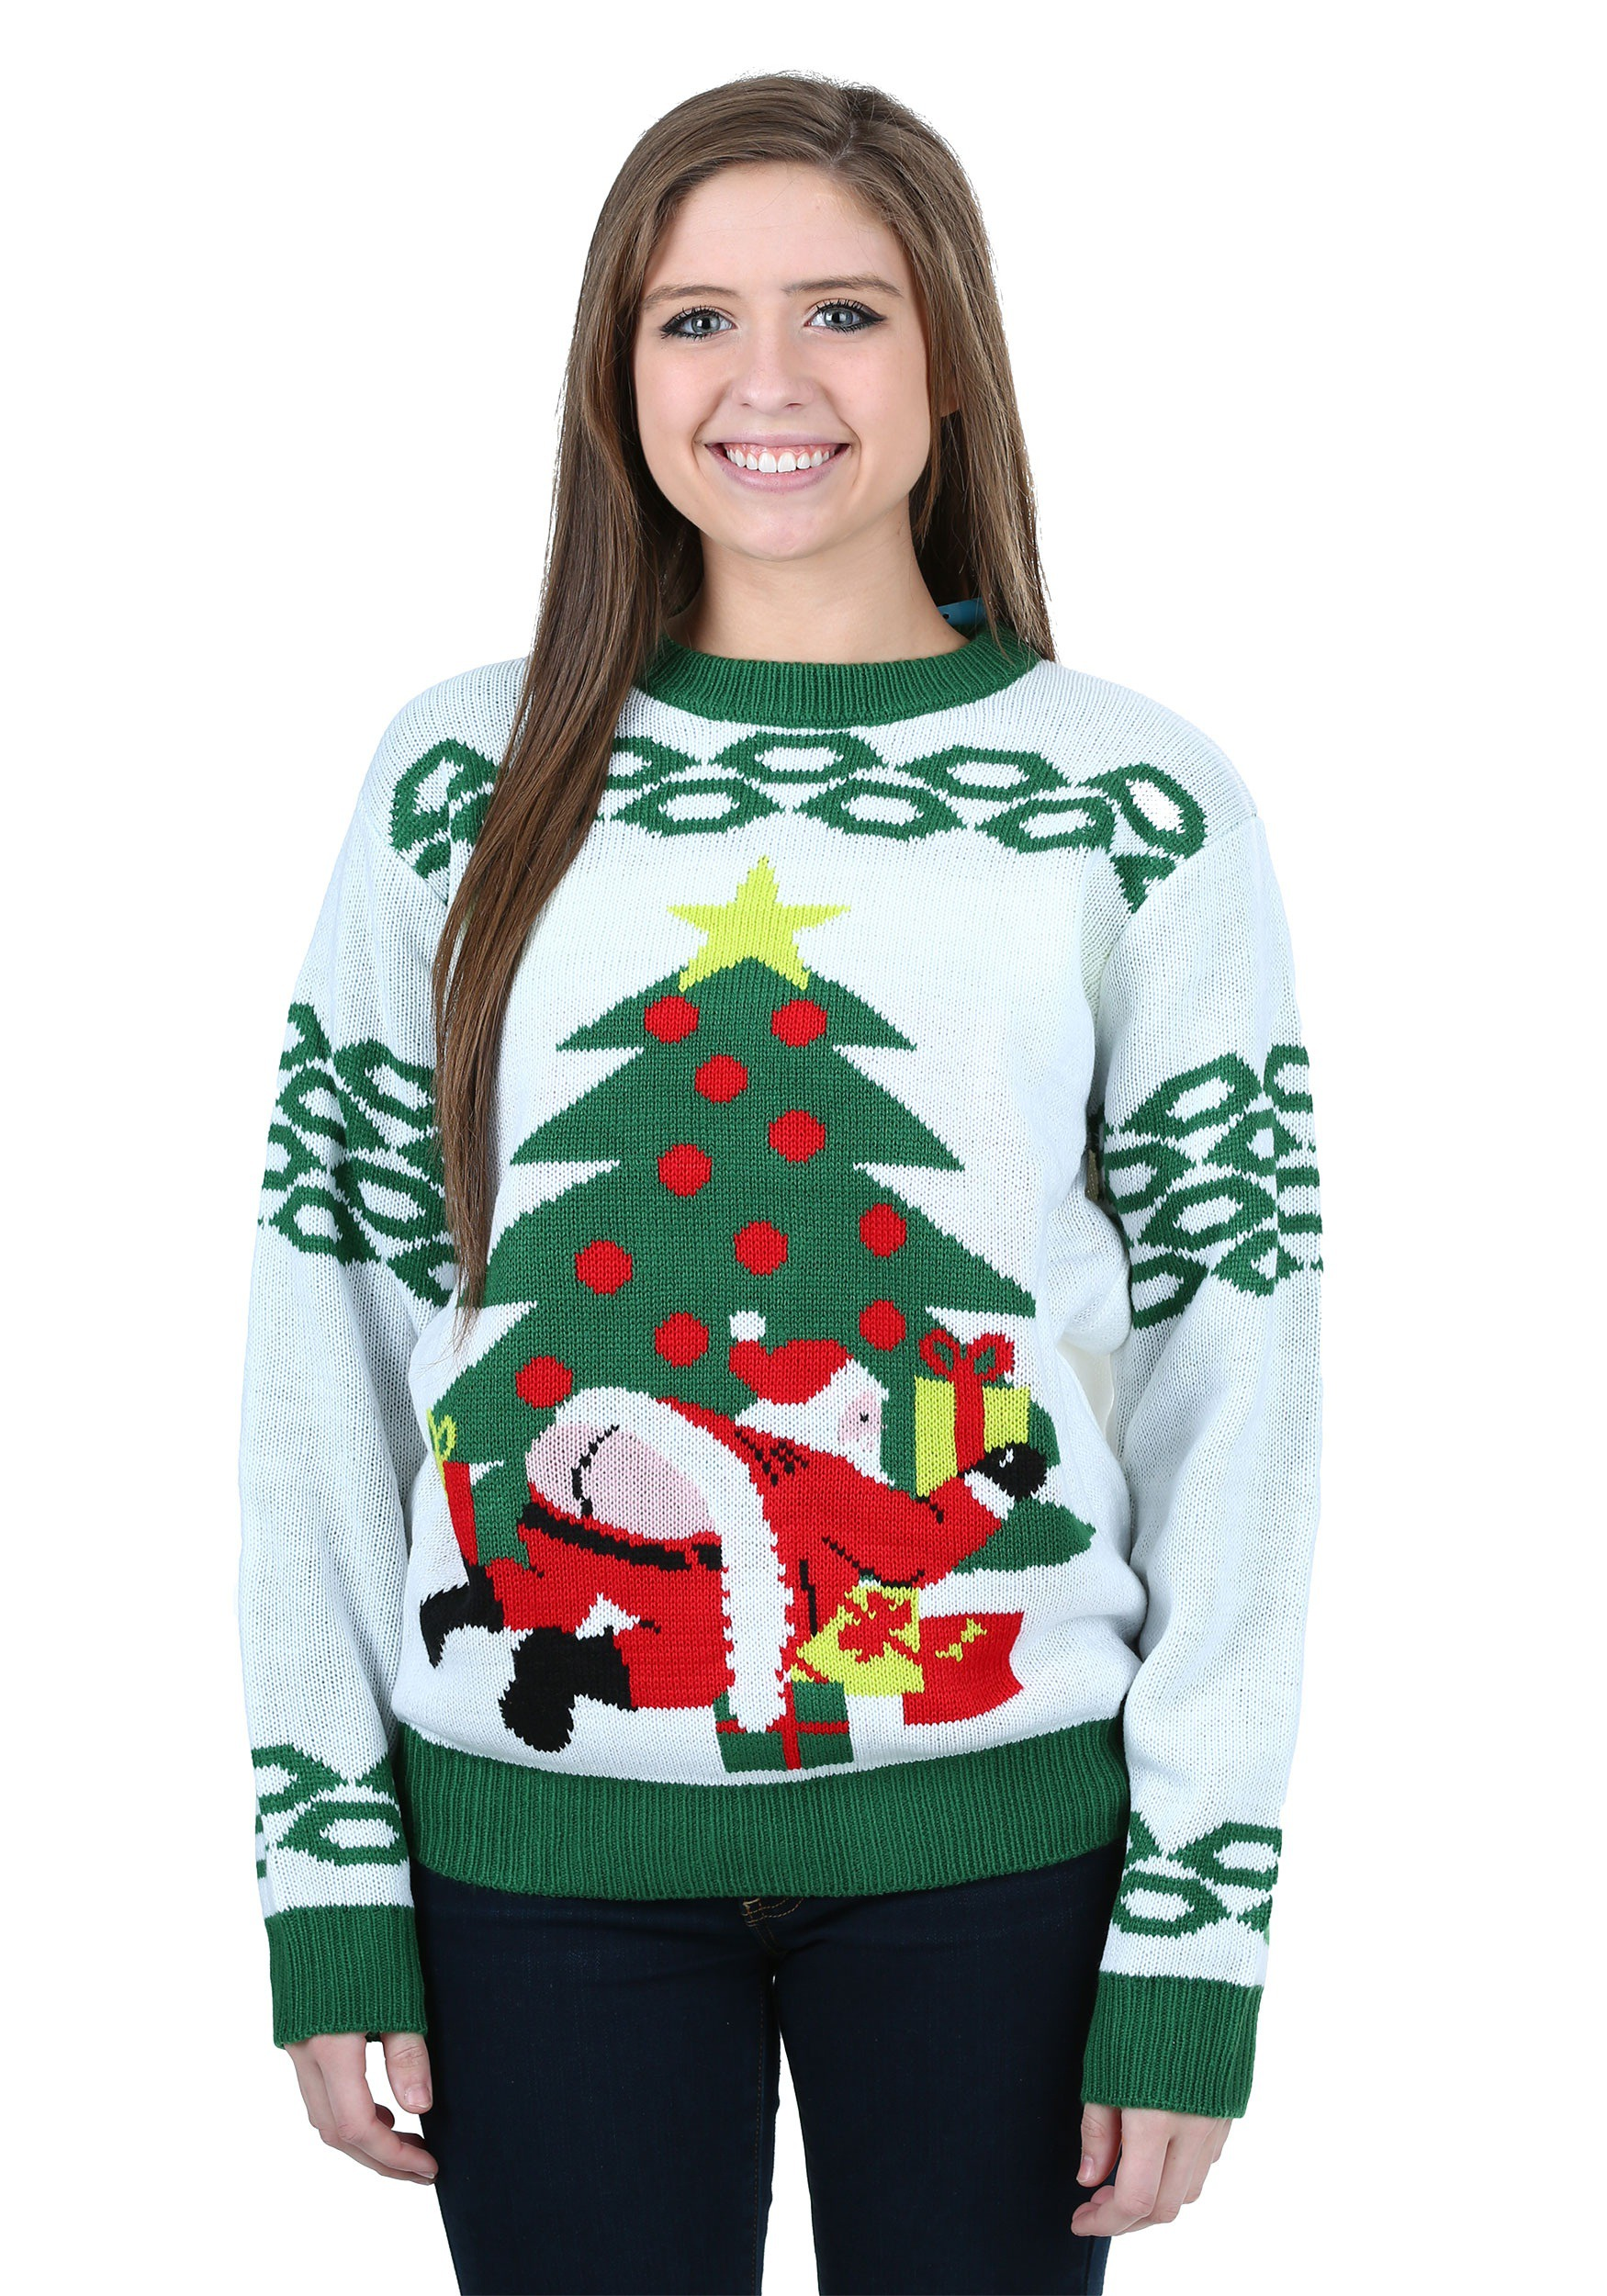 butt crack santa ugly christmas sweater - Best Place To Buy Ugly Christmas Sweaters